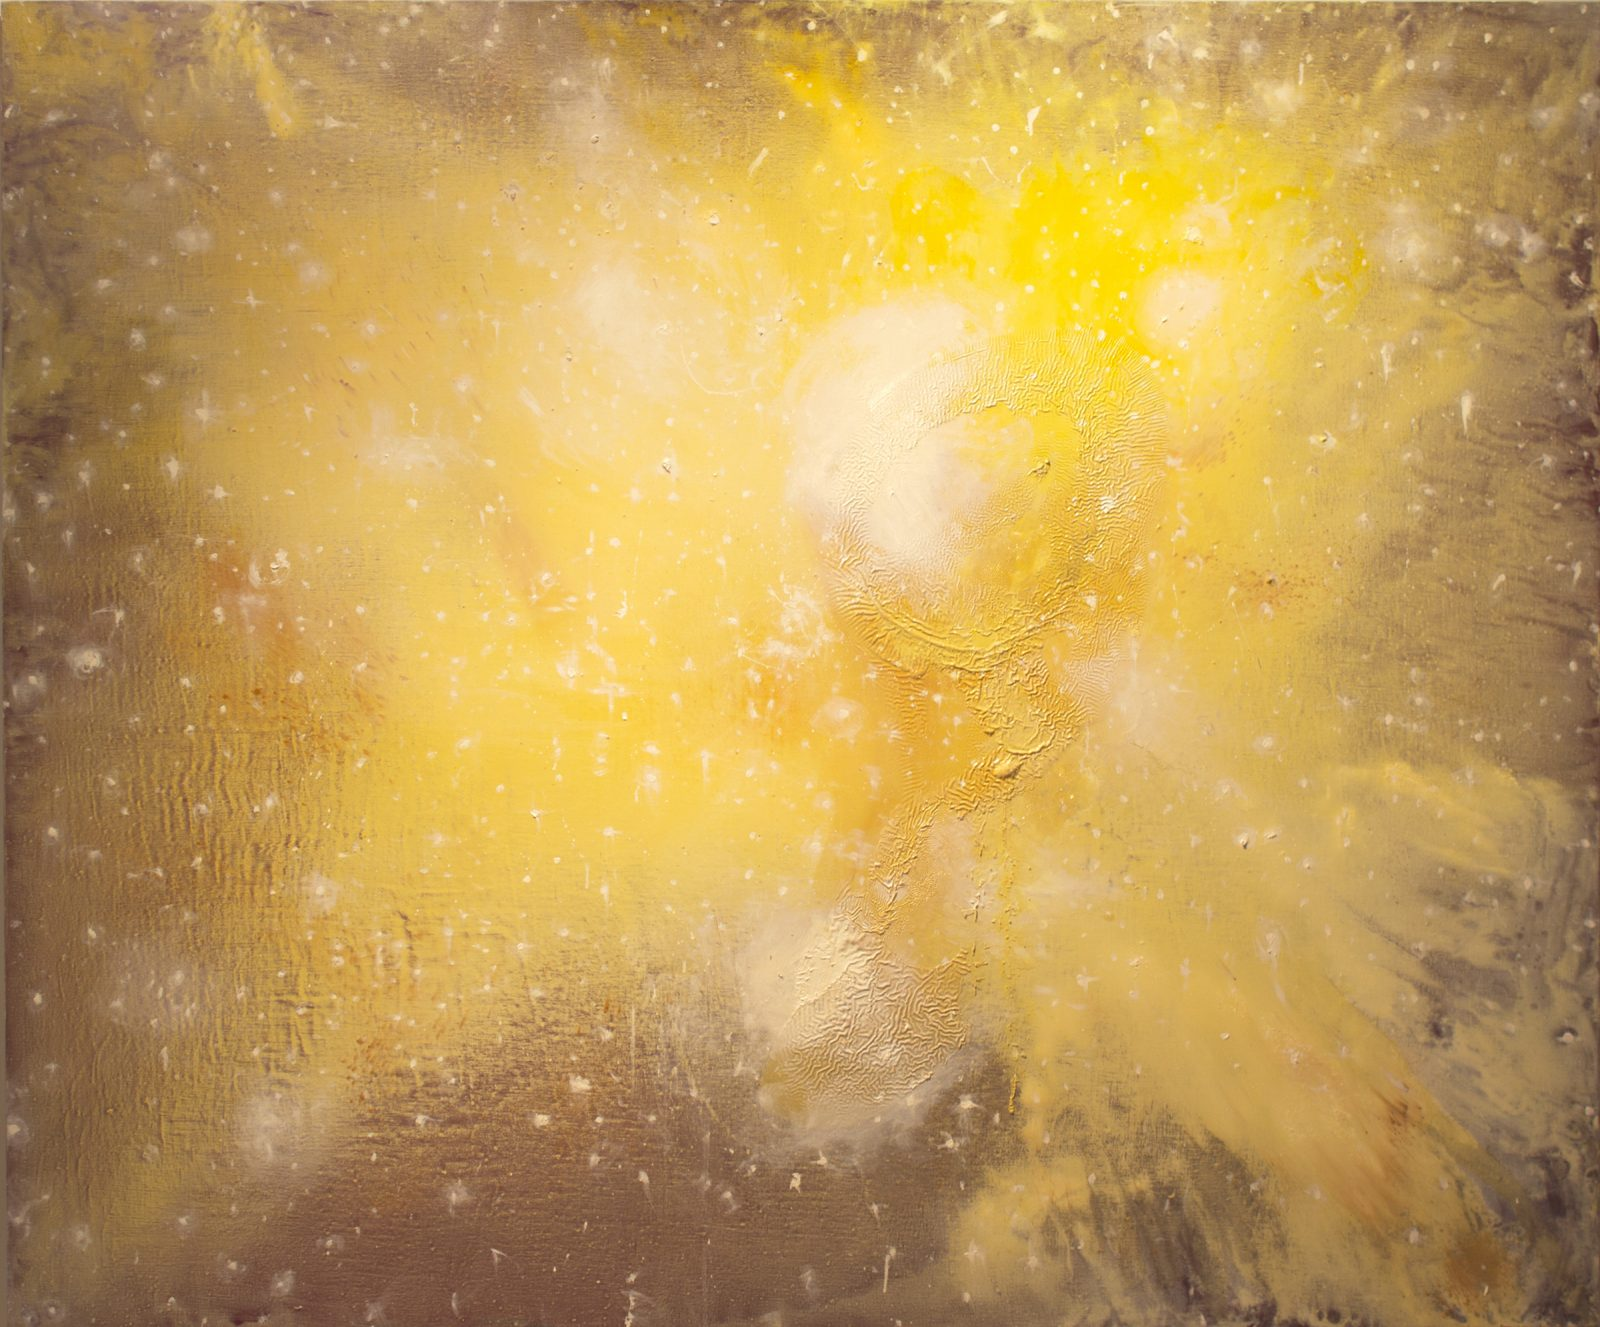 Air #10-3, 60 x 72, oil on canvas, 2012